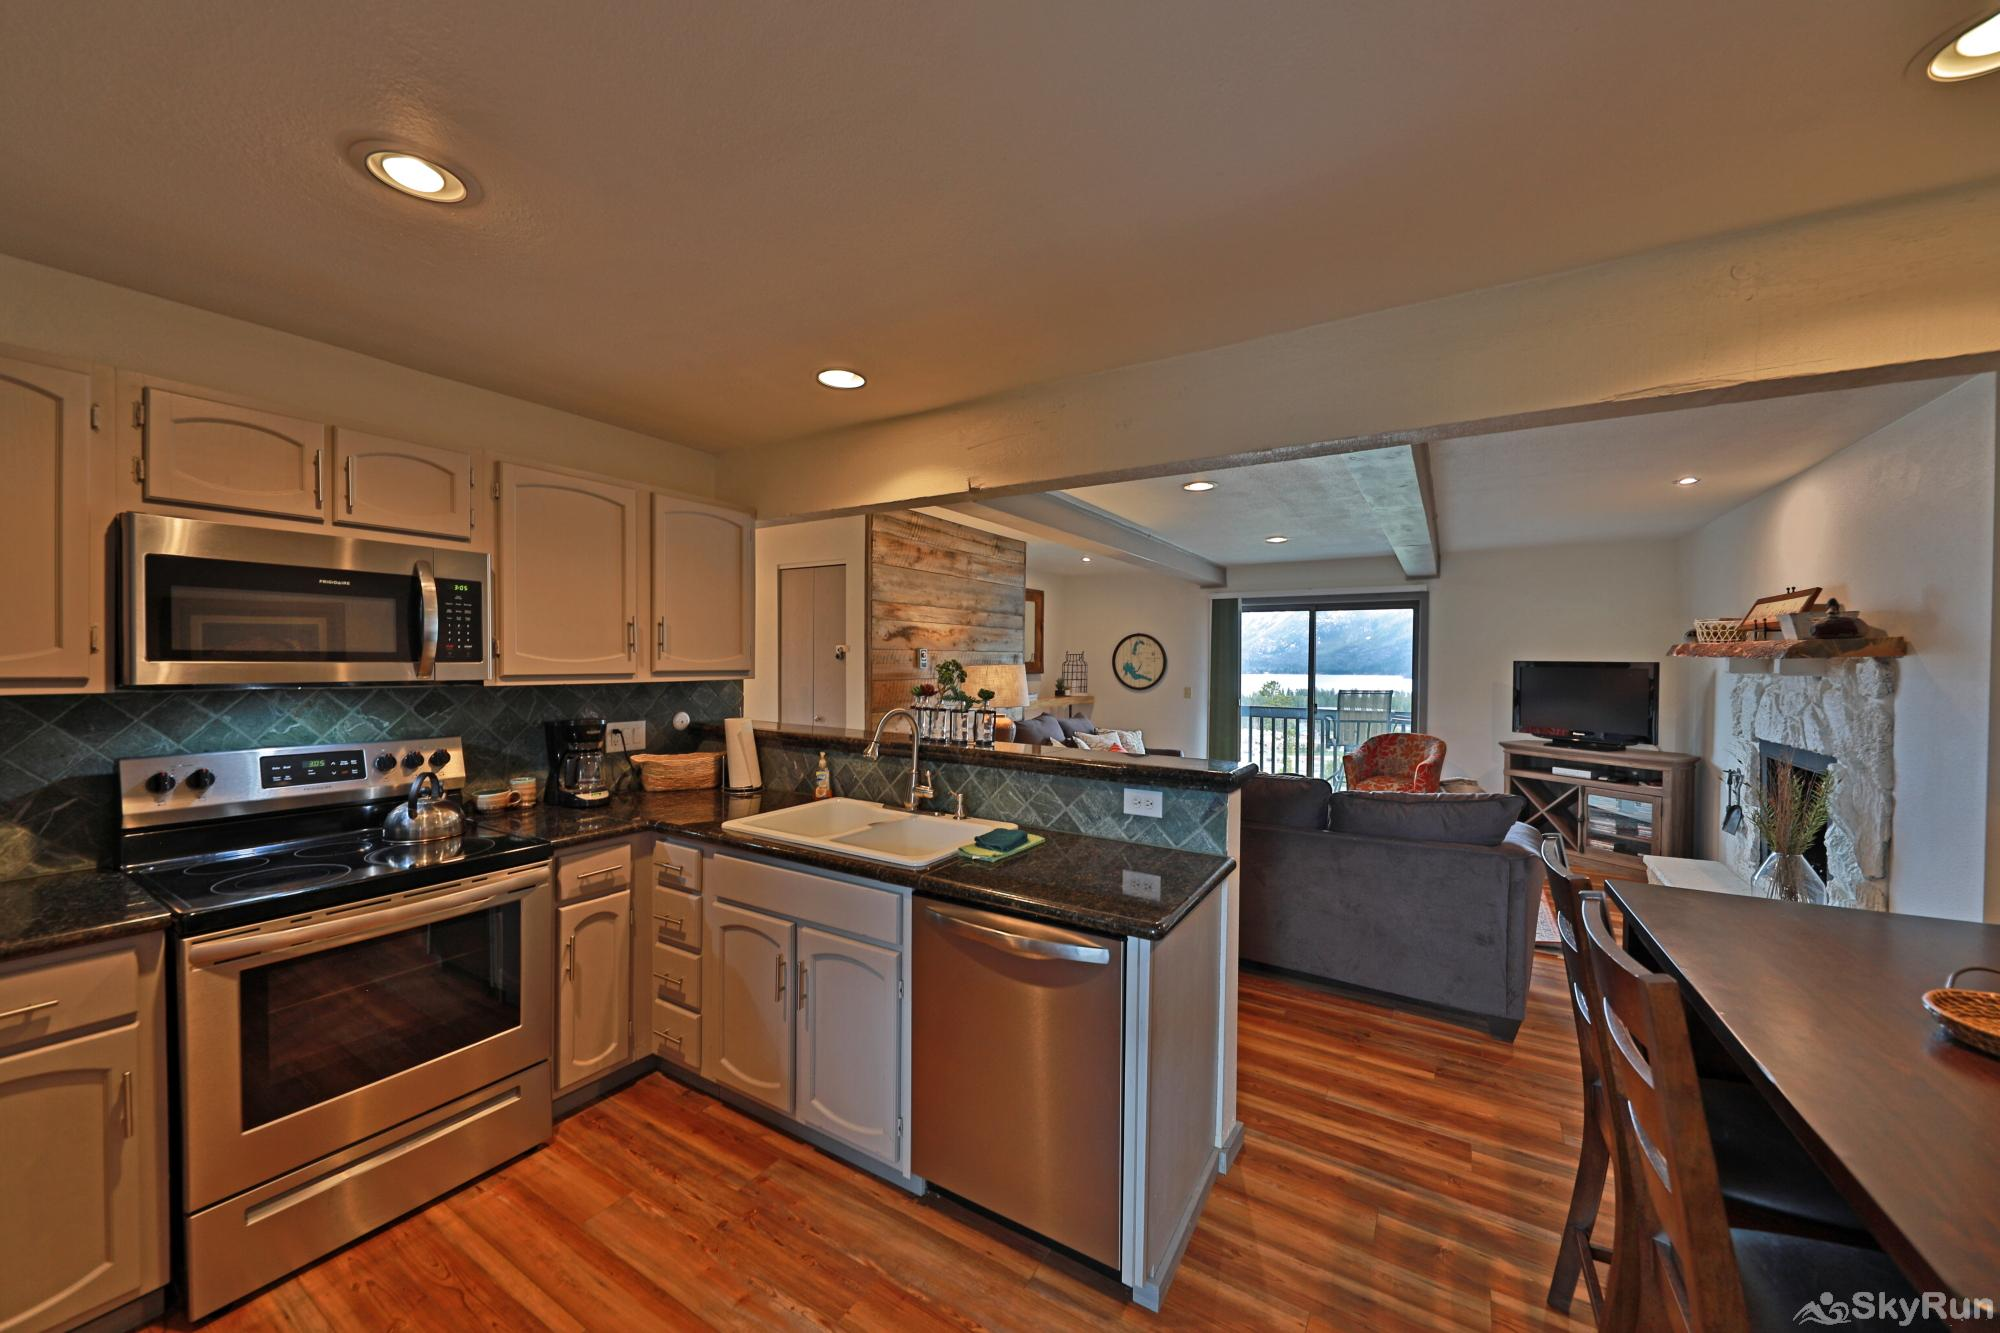 The Birdhouse at Shadow Park West Fully equipt kitchen with granite countertops and high end appliances